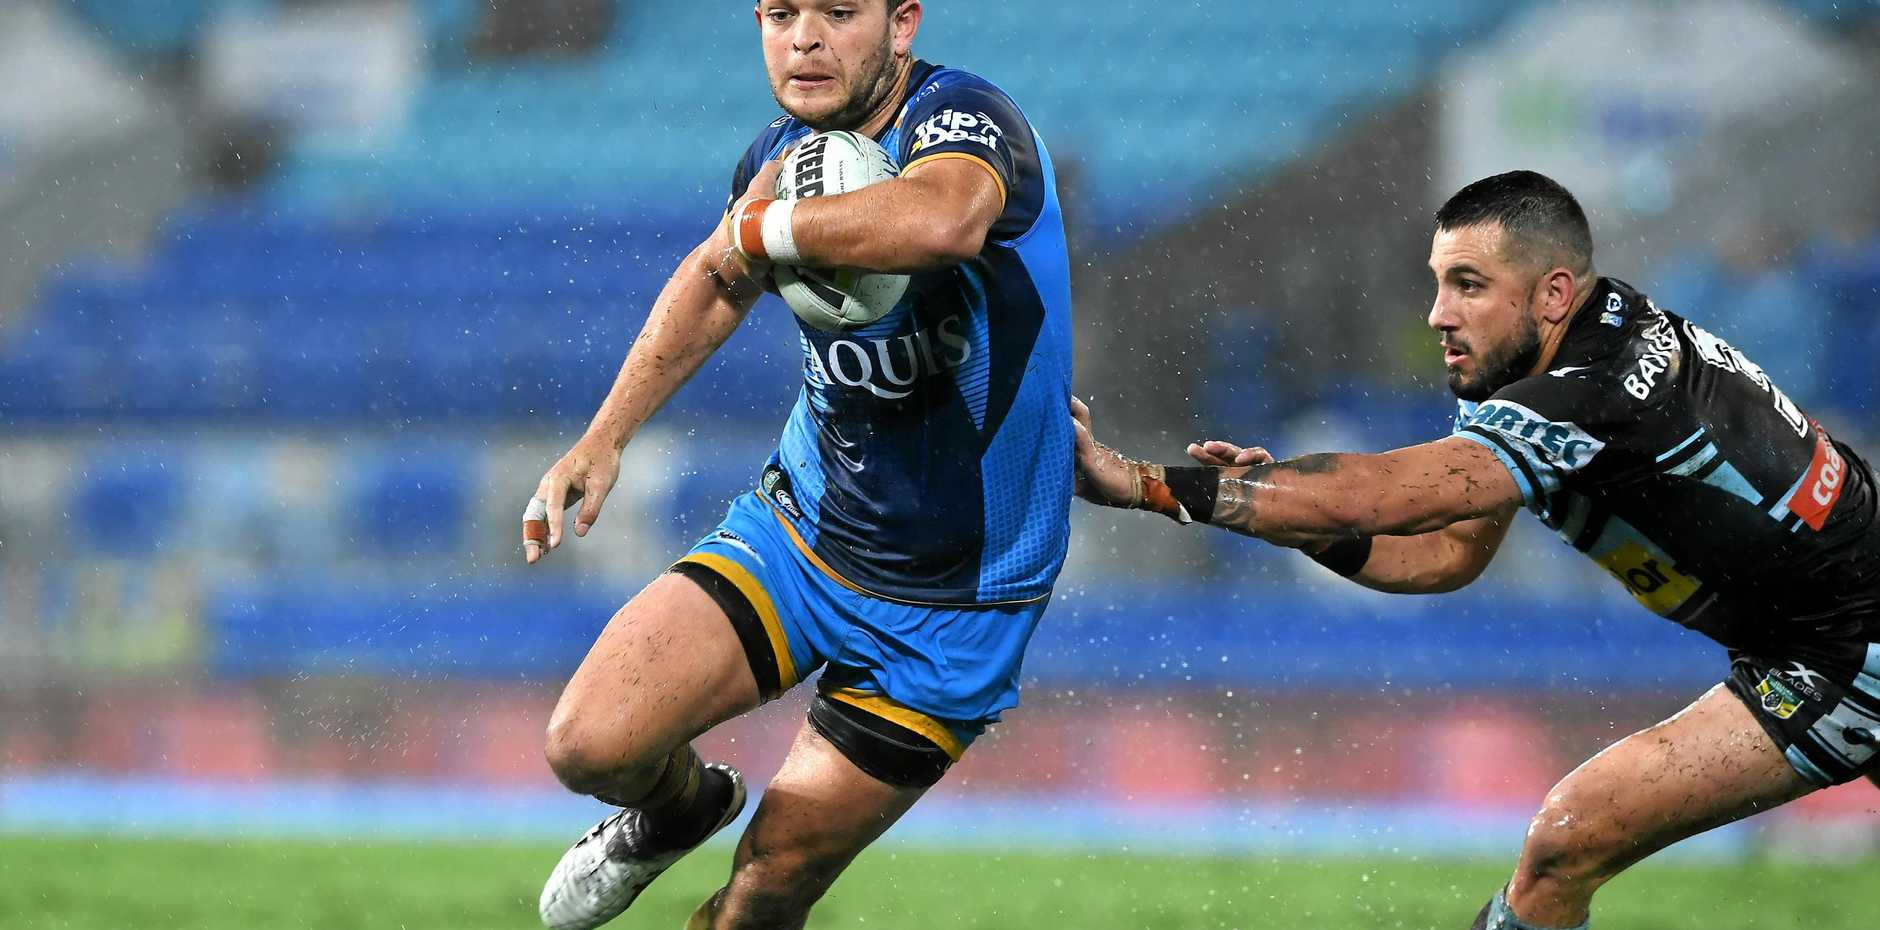 STAR: Titans player Ashley Taylor is looking to steer his team to a win over the Dragons on Sunday.